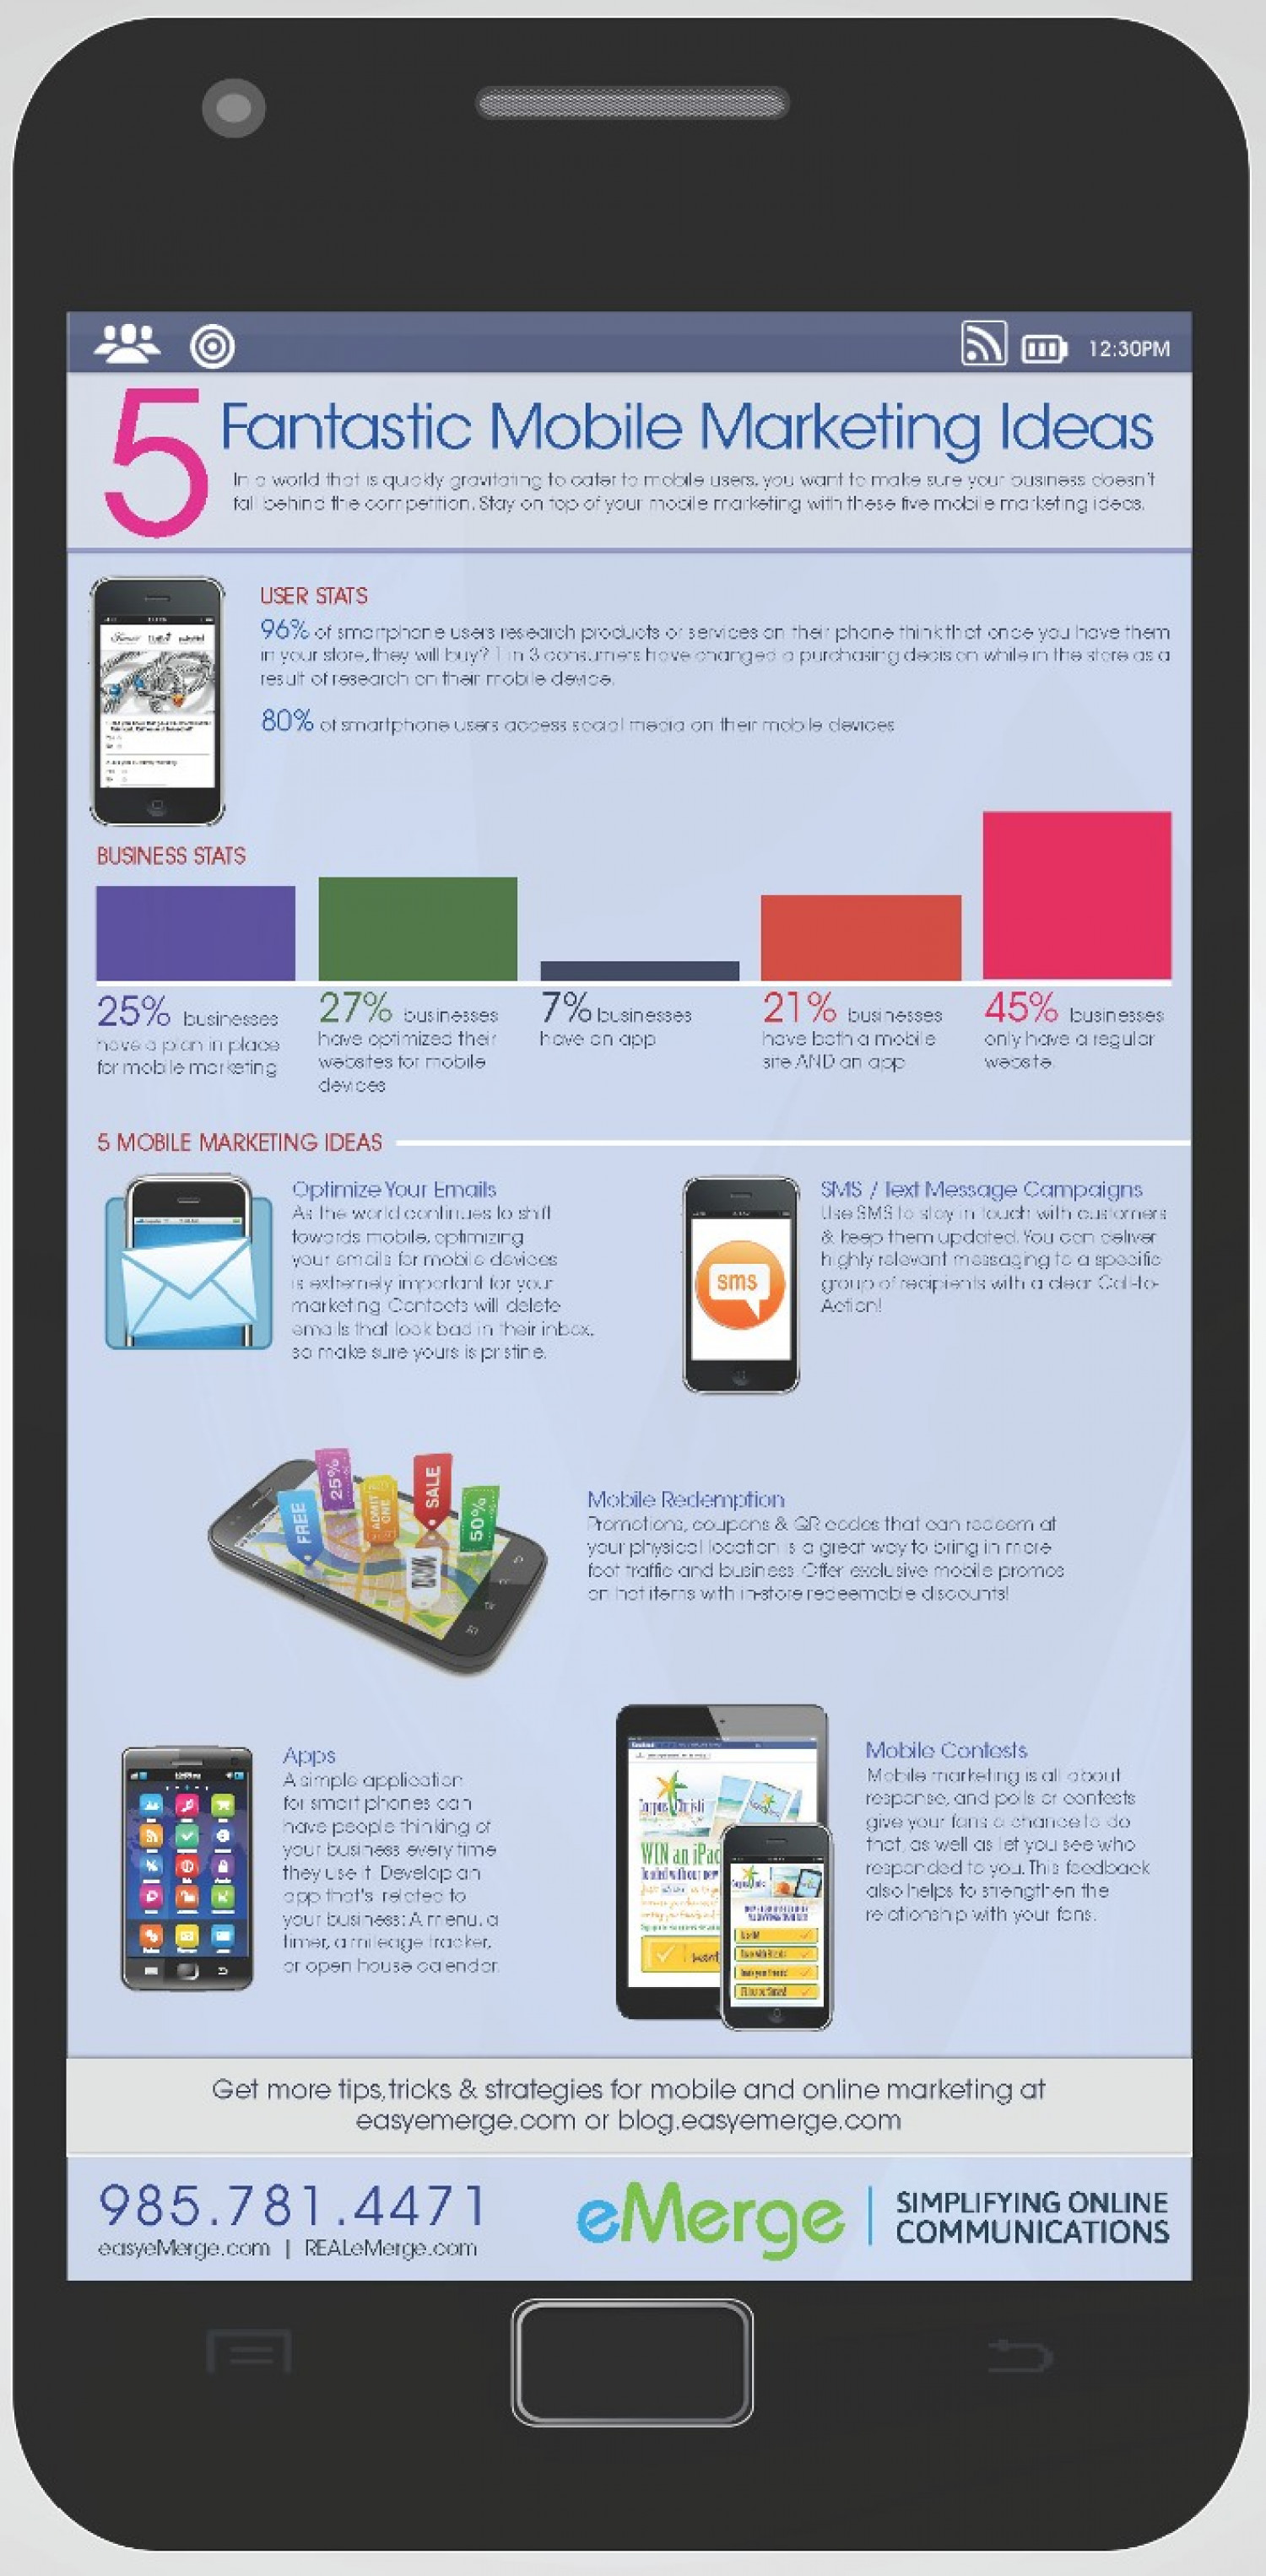 5 Fantastic Mobile Marketing Ideas Infographic